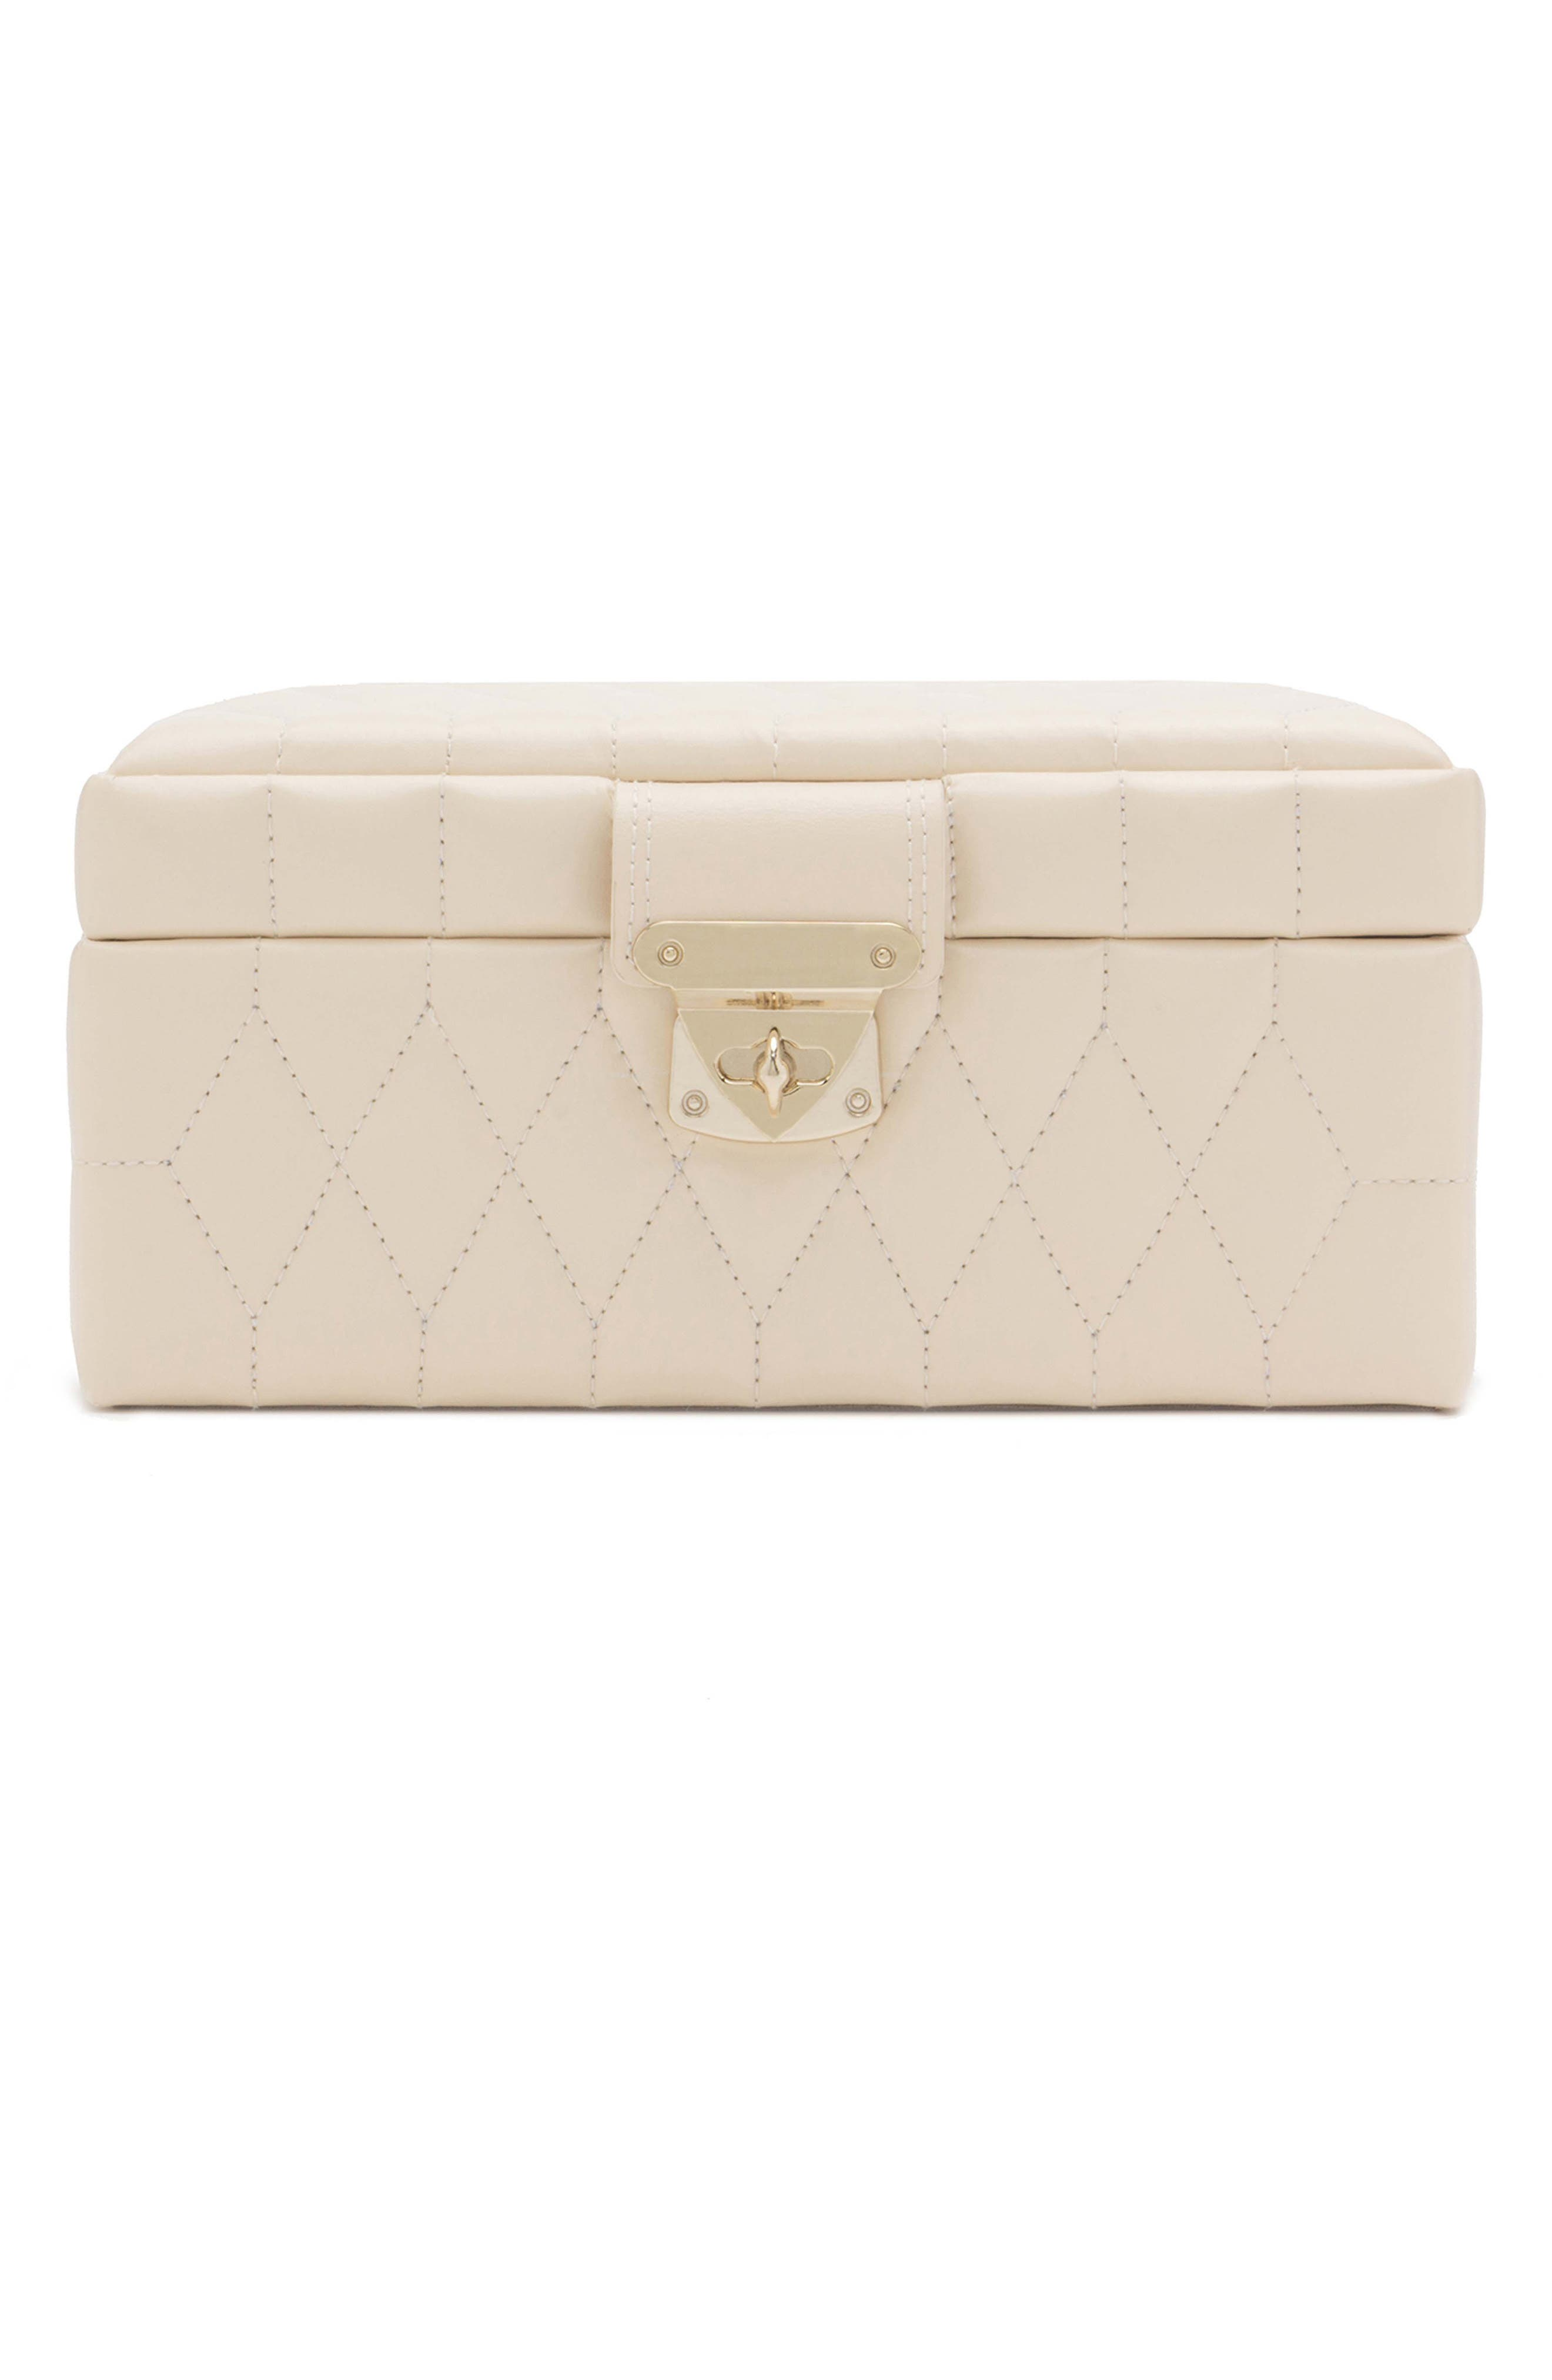 WOLF Caroline Small Travel Jewelry Case - White in Ivory